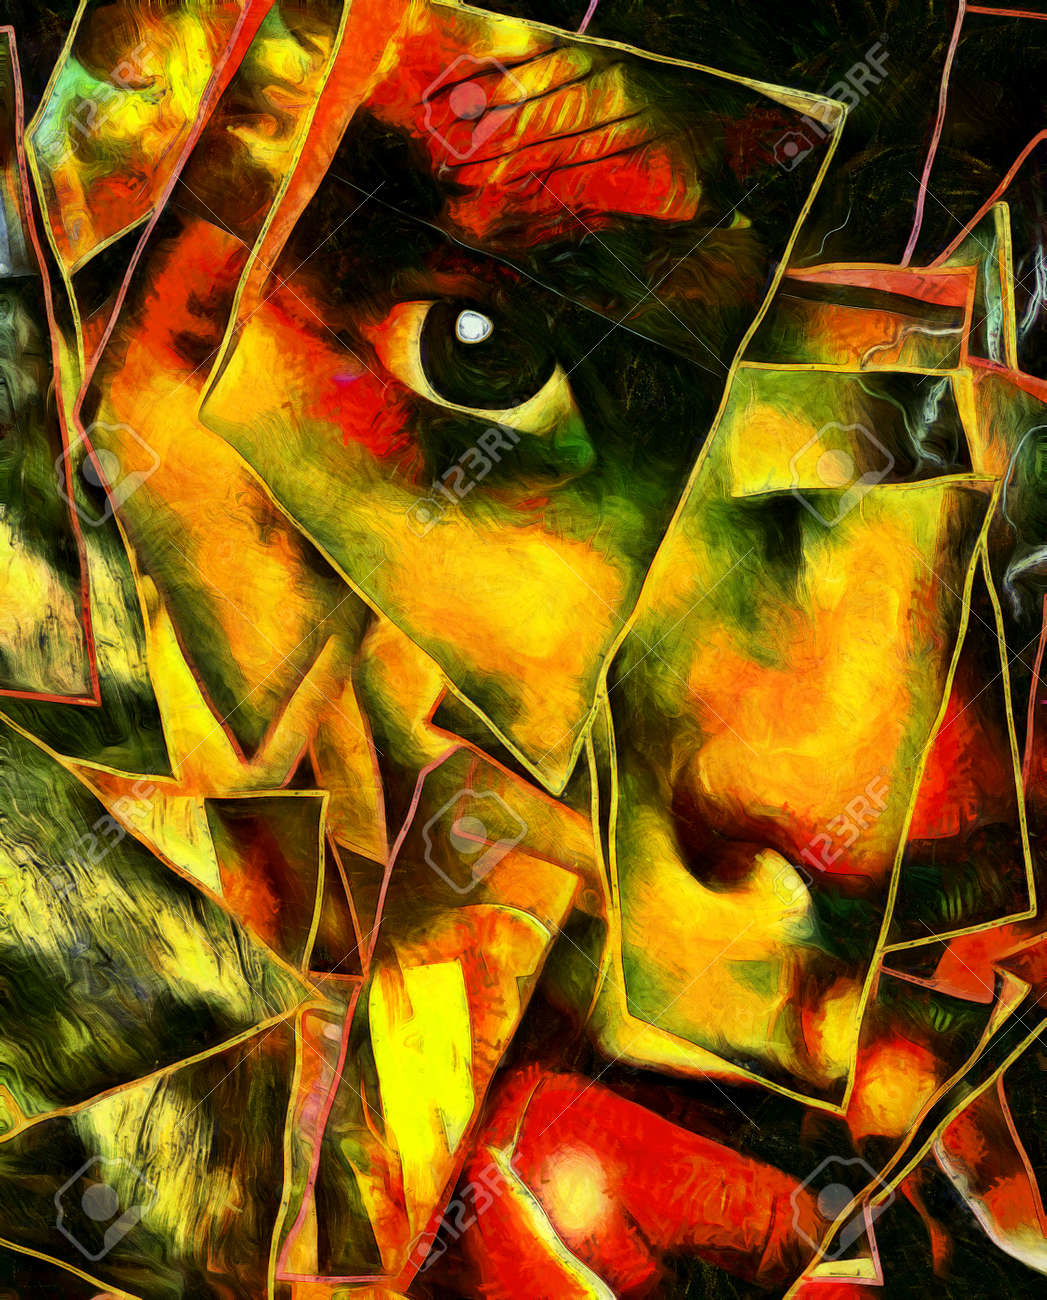 Dark Emotion Face Multi Layered Abstract